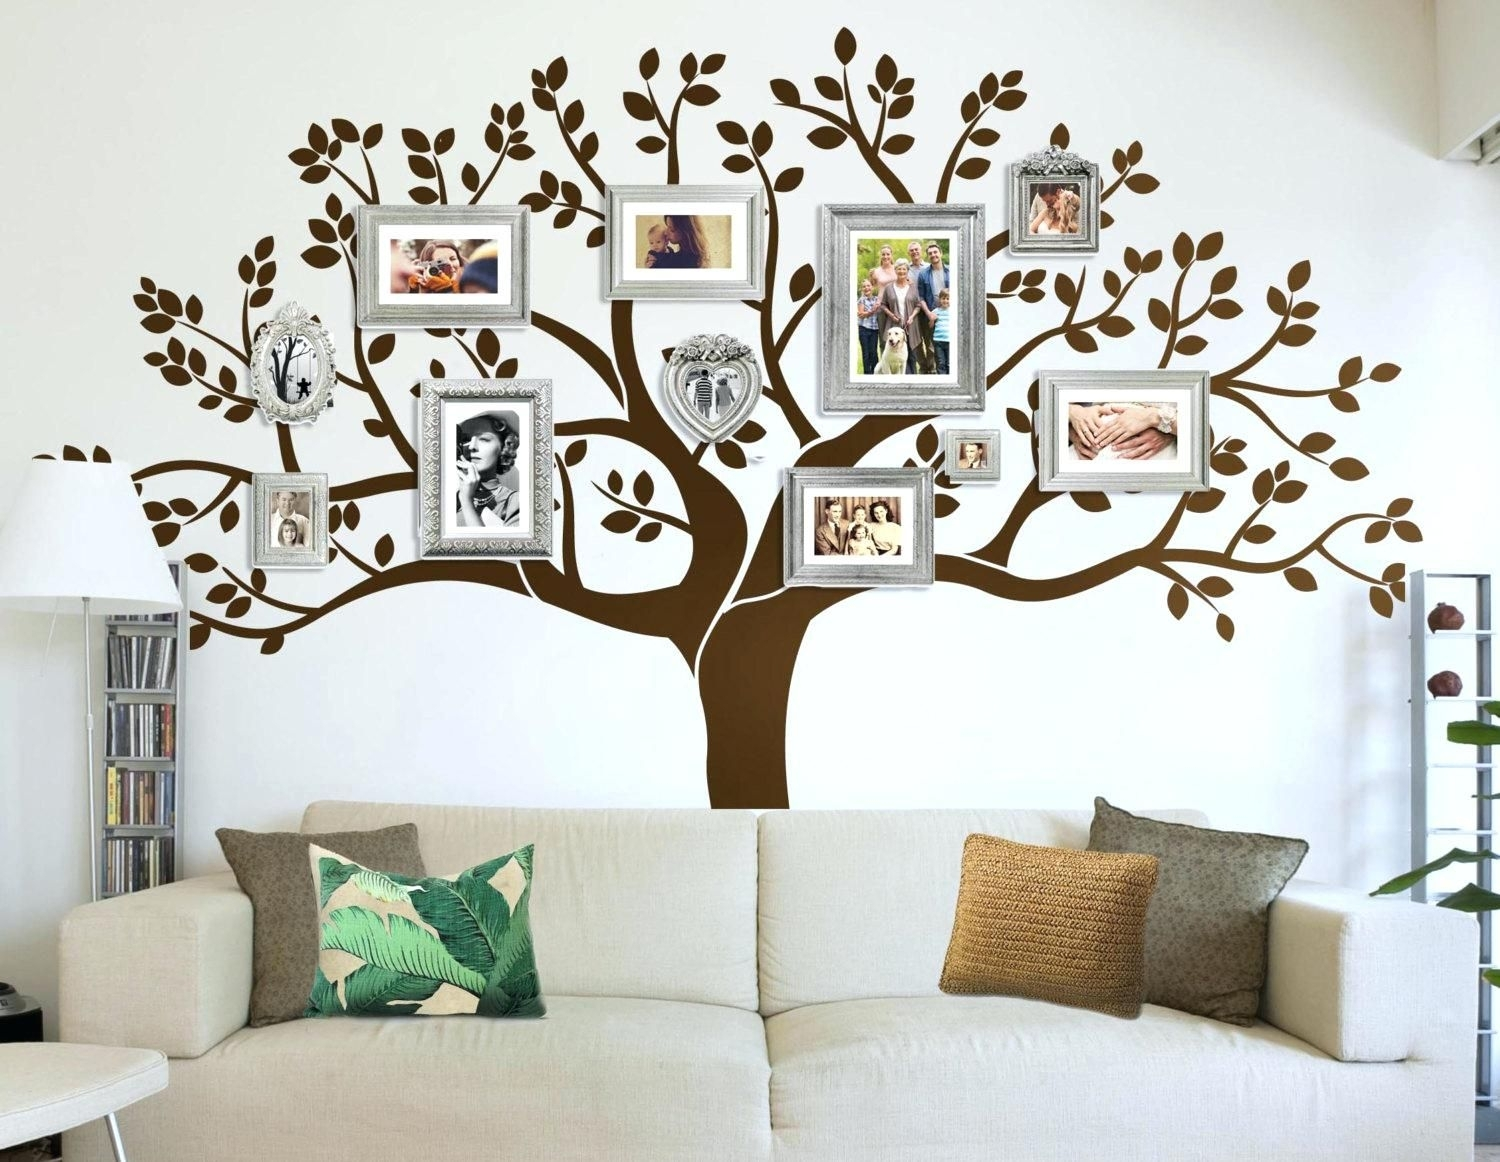 Stunning Large Wood Tree Wall Decor Art On Designs Decoration Diy With Most Current Wall Tree Art (View 15 of 20)